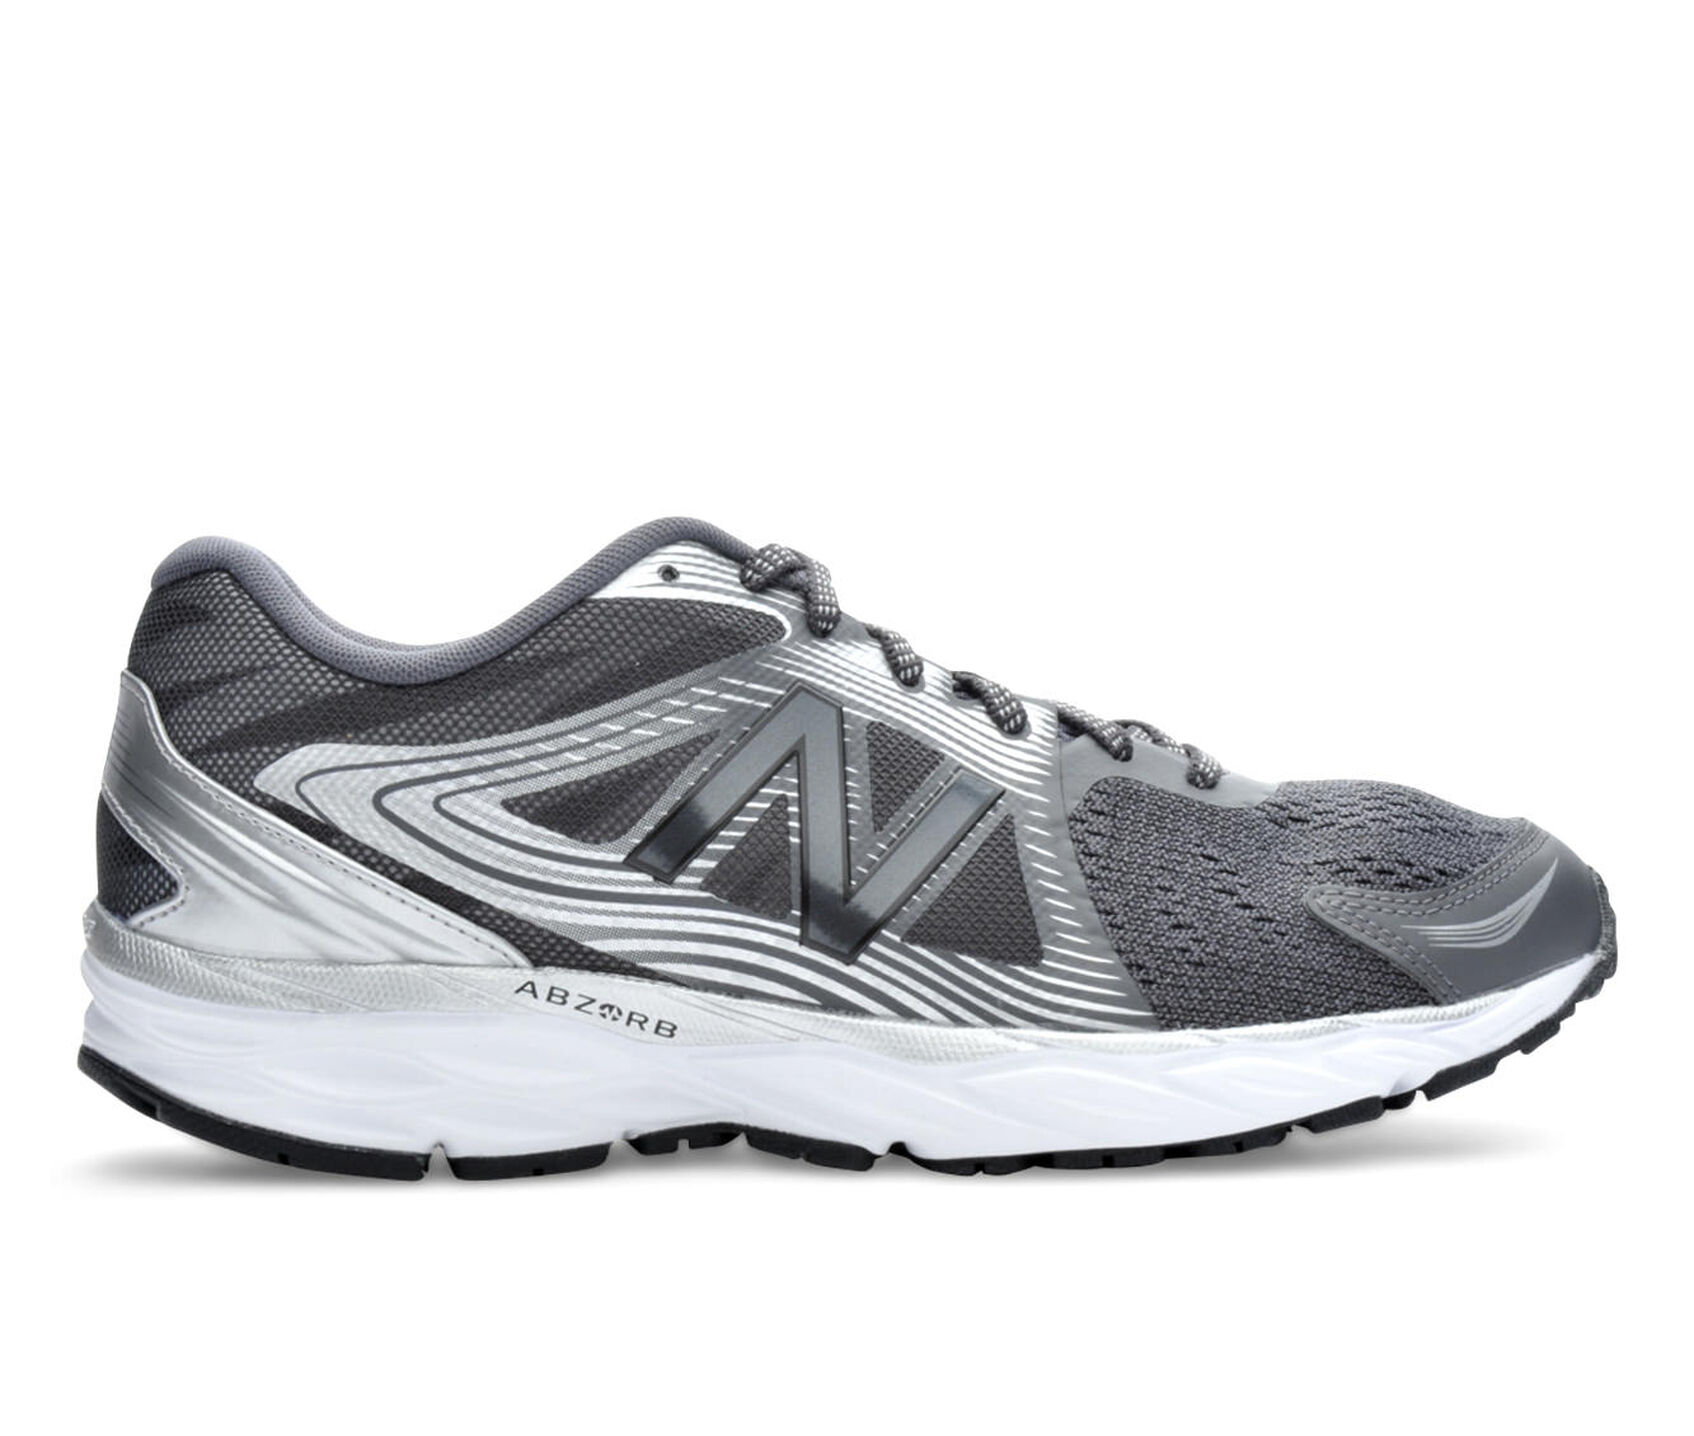 Local Shoes in Fargo,ND with maps, local business reviews, directions and more.